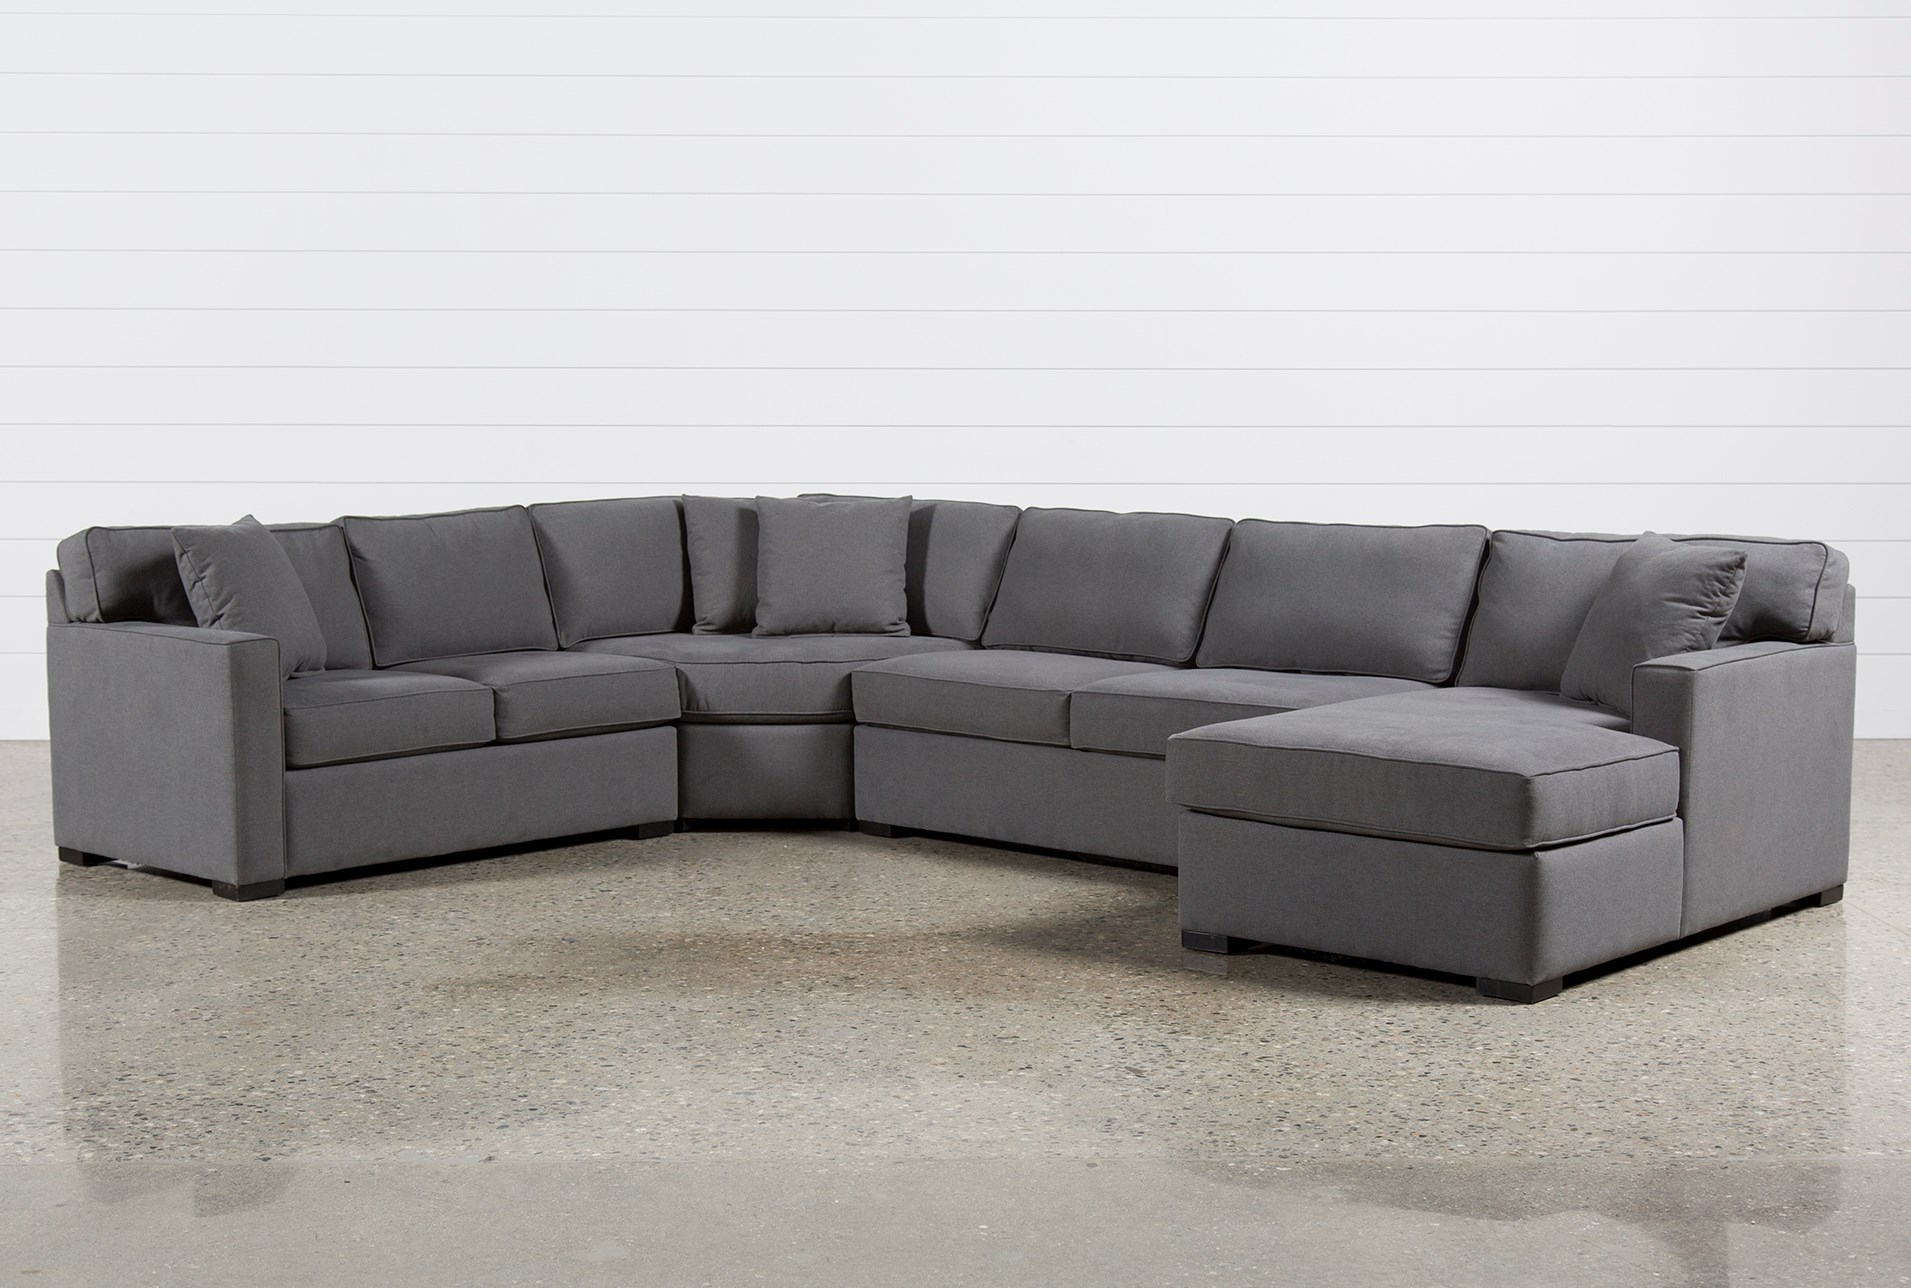 Astonishing Sectionals Sectional Sofas Living Spaces Inzonedesignstudio Interior Chair Design Inzonedesignstudiocom